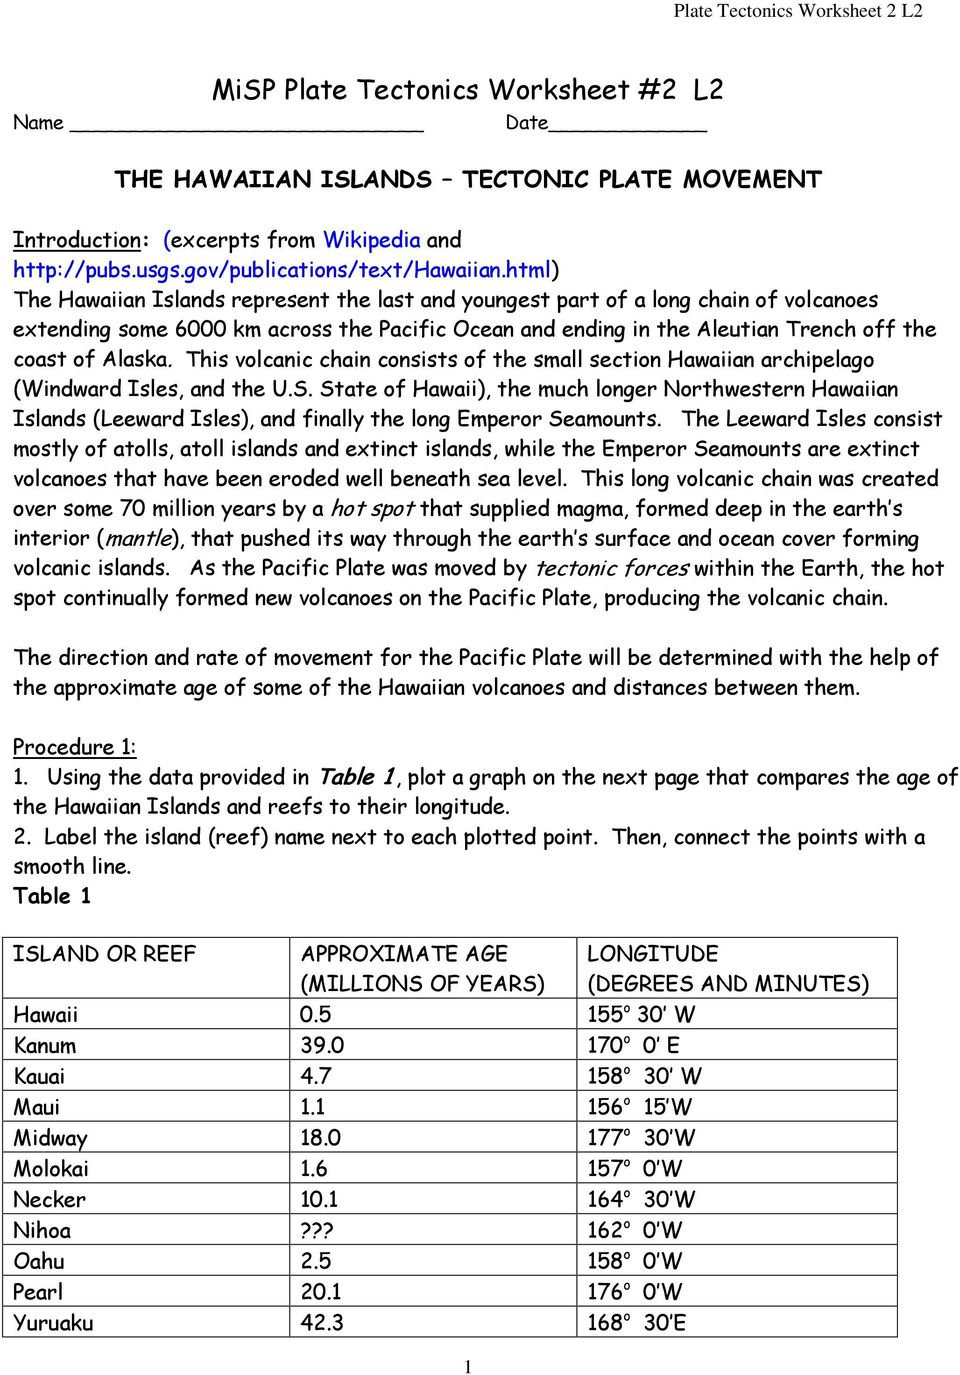 Worksheets Plate Tectonics Worksheet misp plate tectonics worksheet 2 l2 pdf this volcanic chain consists of the small section hawaiian archipelago windward isles and worksheet